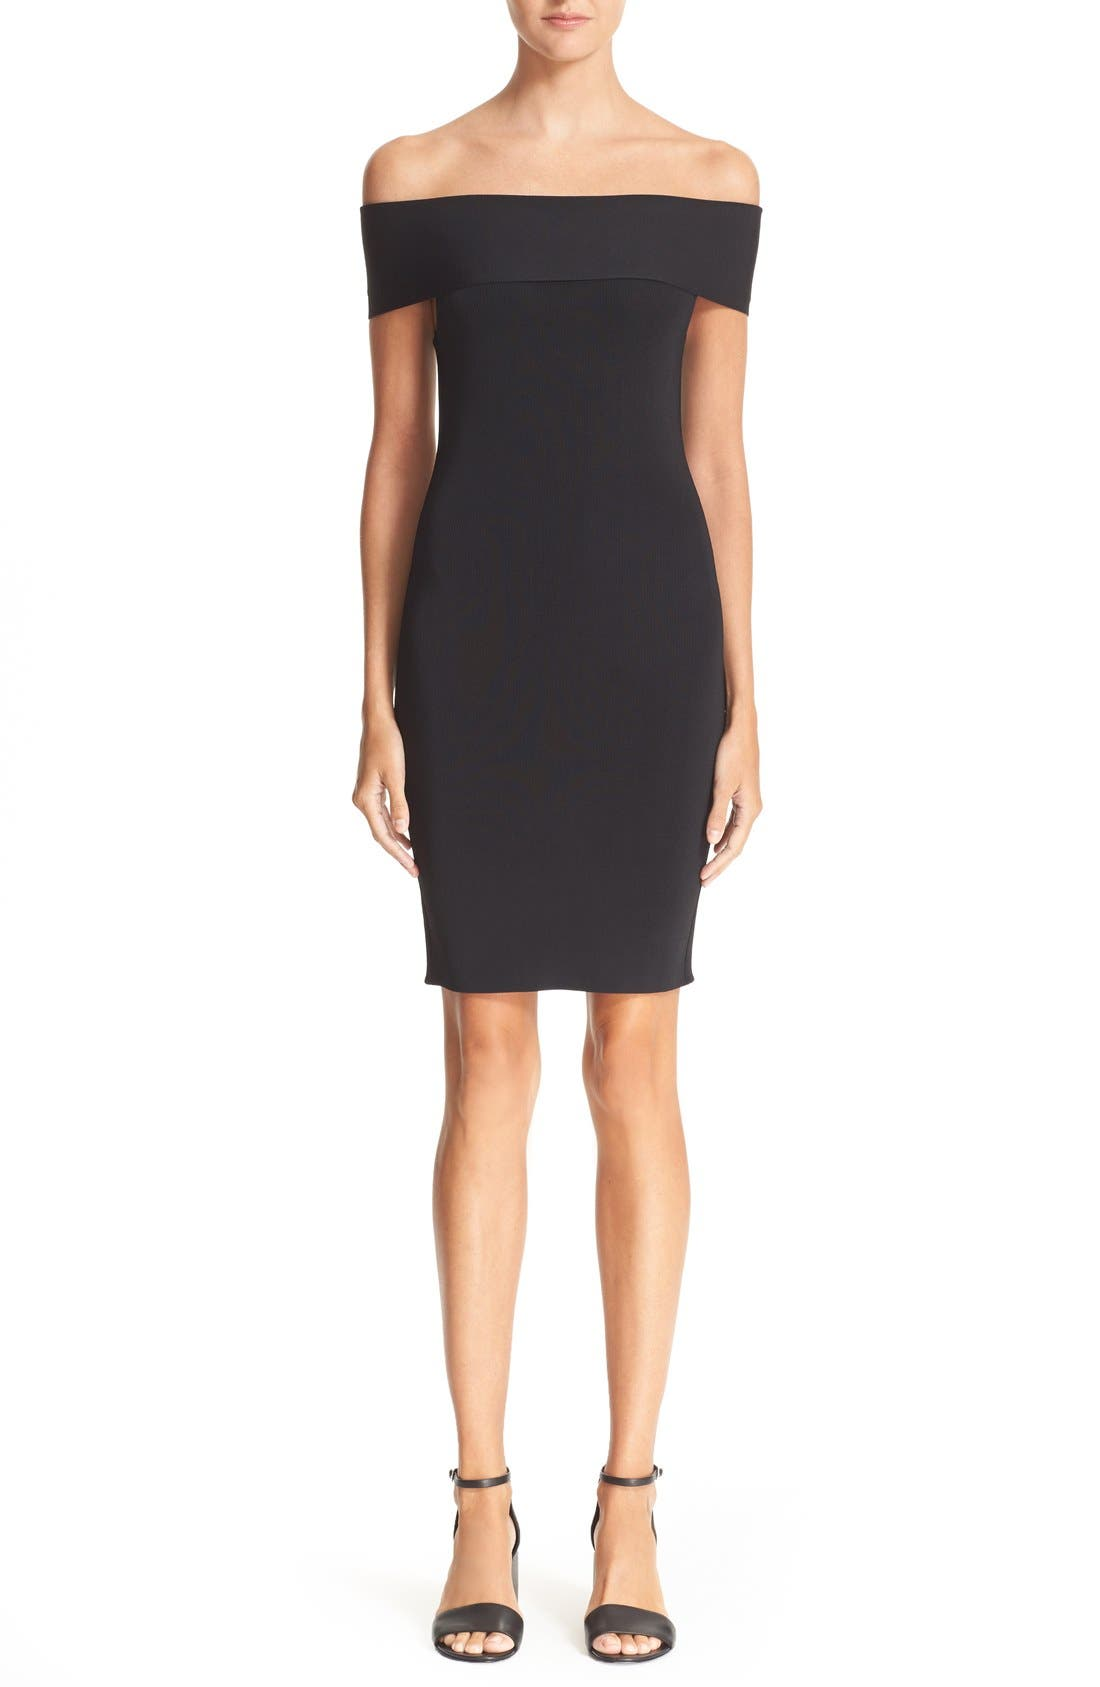 Alternate Image 1 Selected - T by Alexander Wang Off the Shoulder Dress